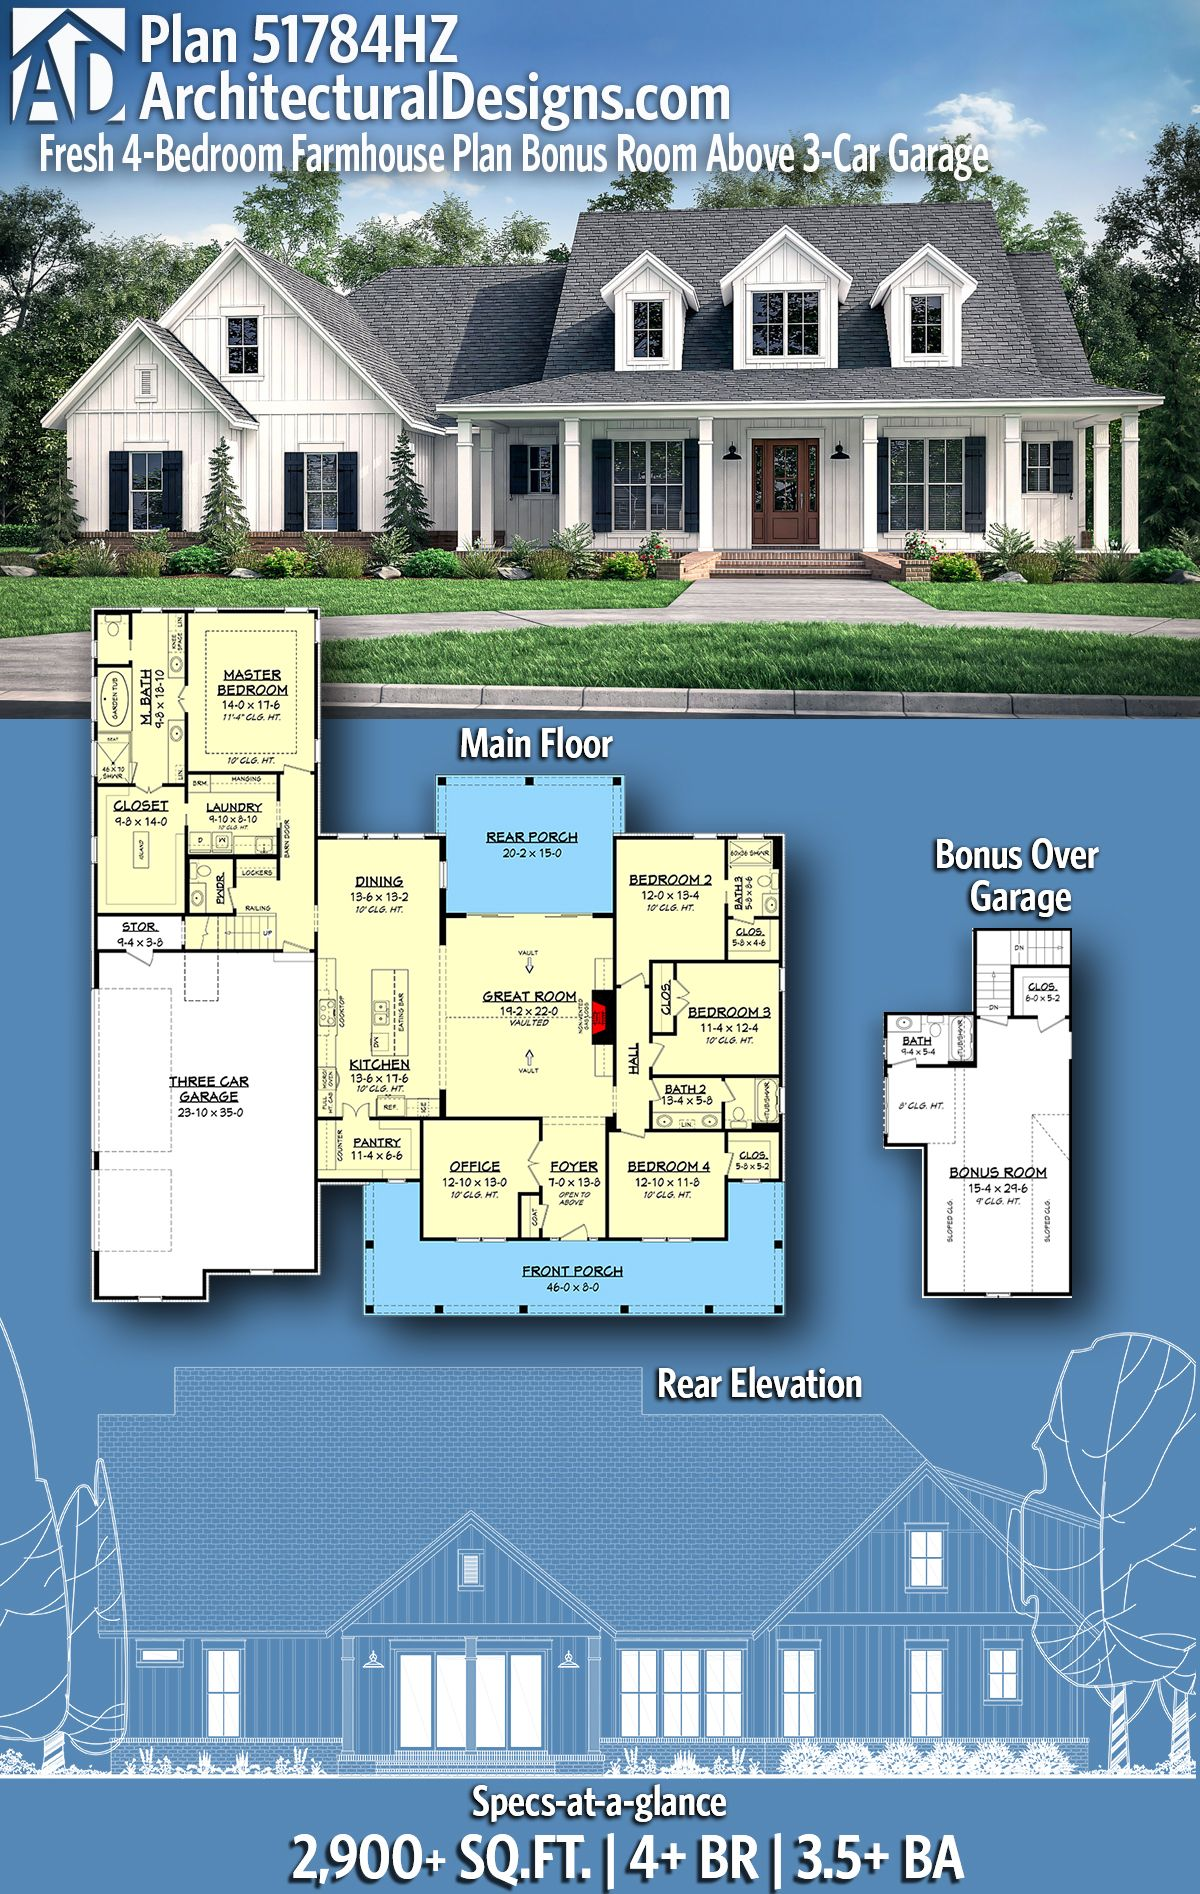 desertrose architectural designs farmhouse plan 51784hz gives you 4 beds 3 5 baths 2 900 sq ft of heated living space with a bonus room above  [ 1200 x 1894 Pixel ]